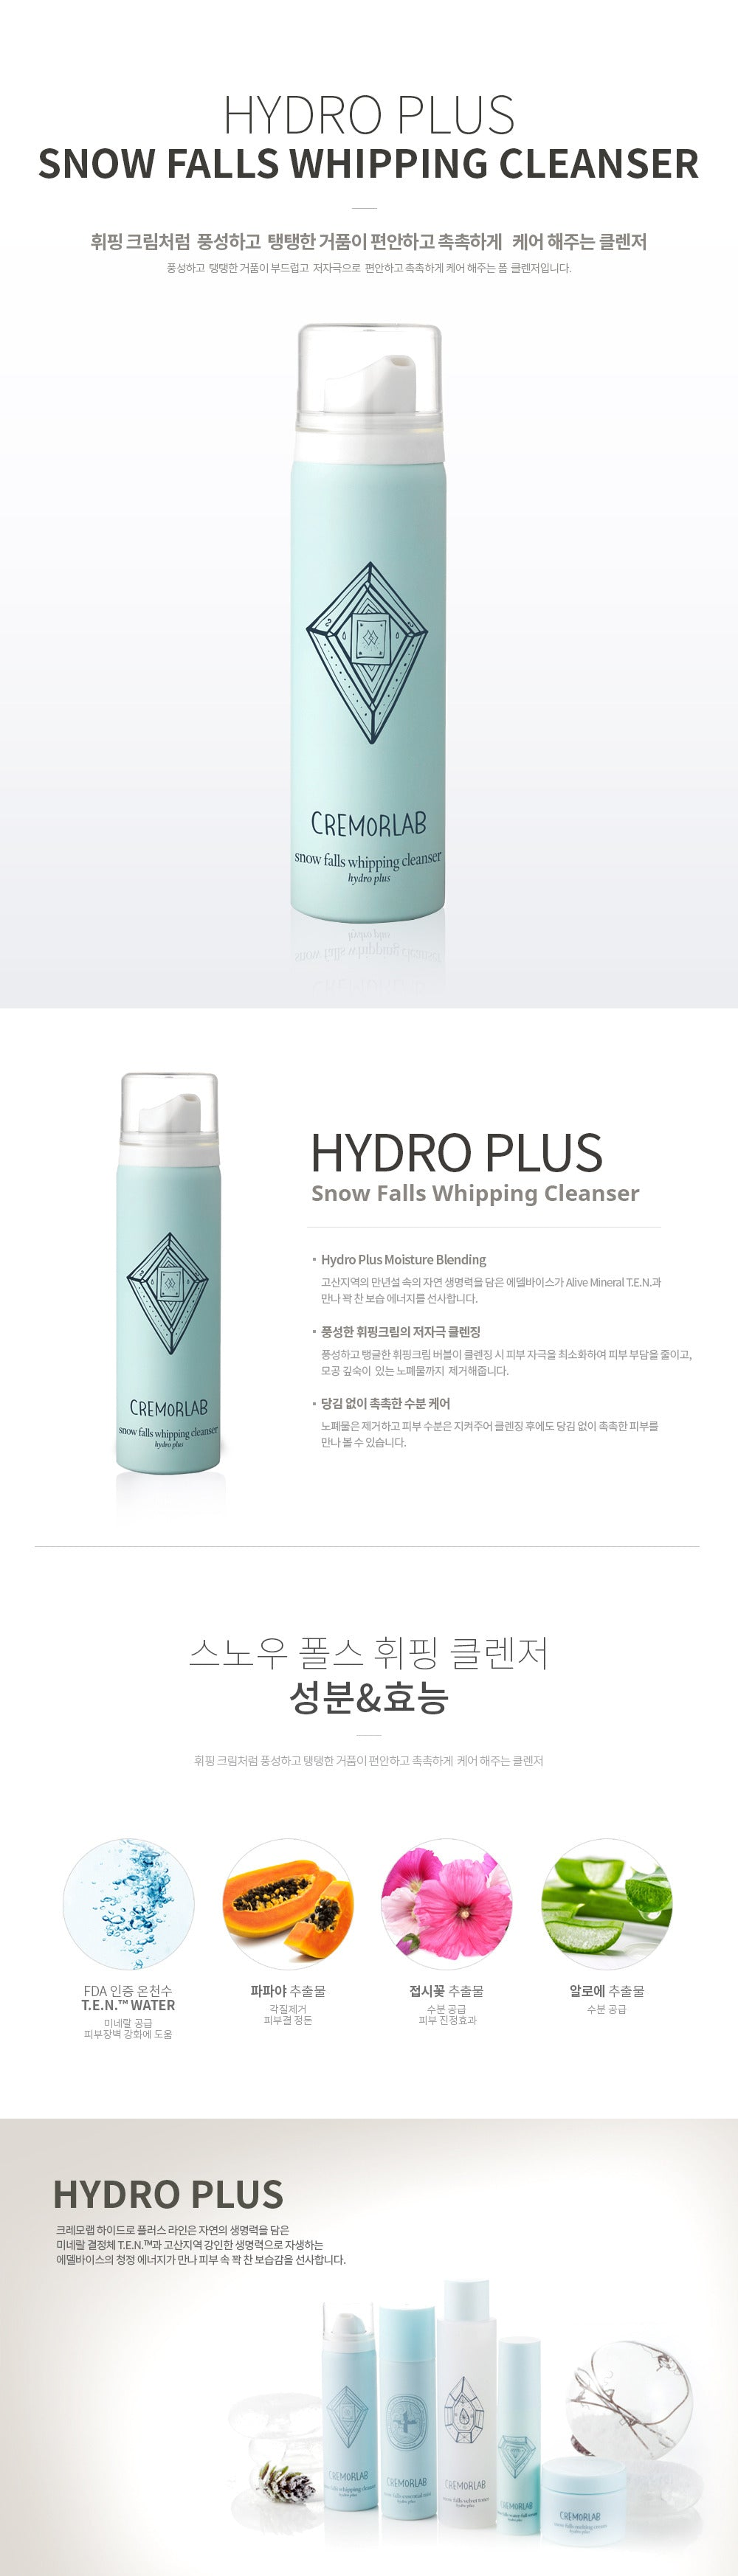 Cremorlab - Snow Falls Whipping Cleanser